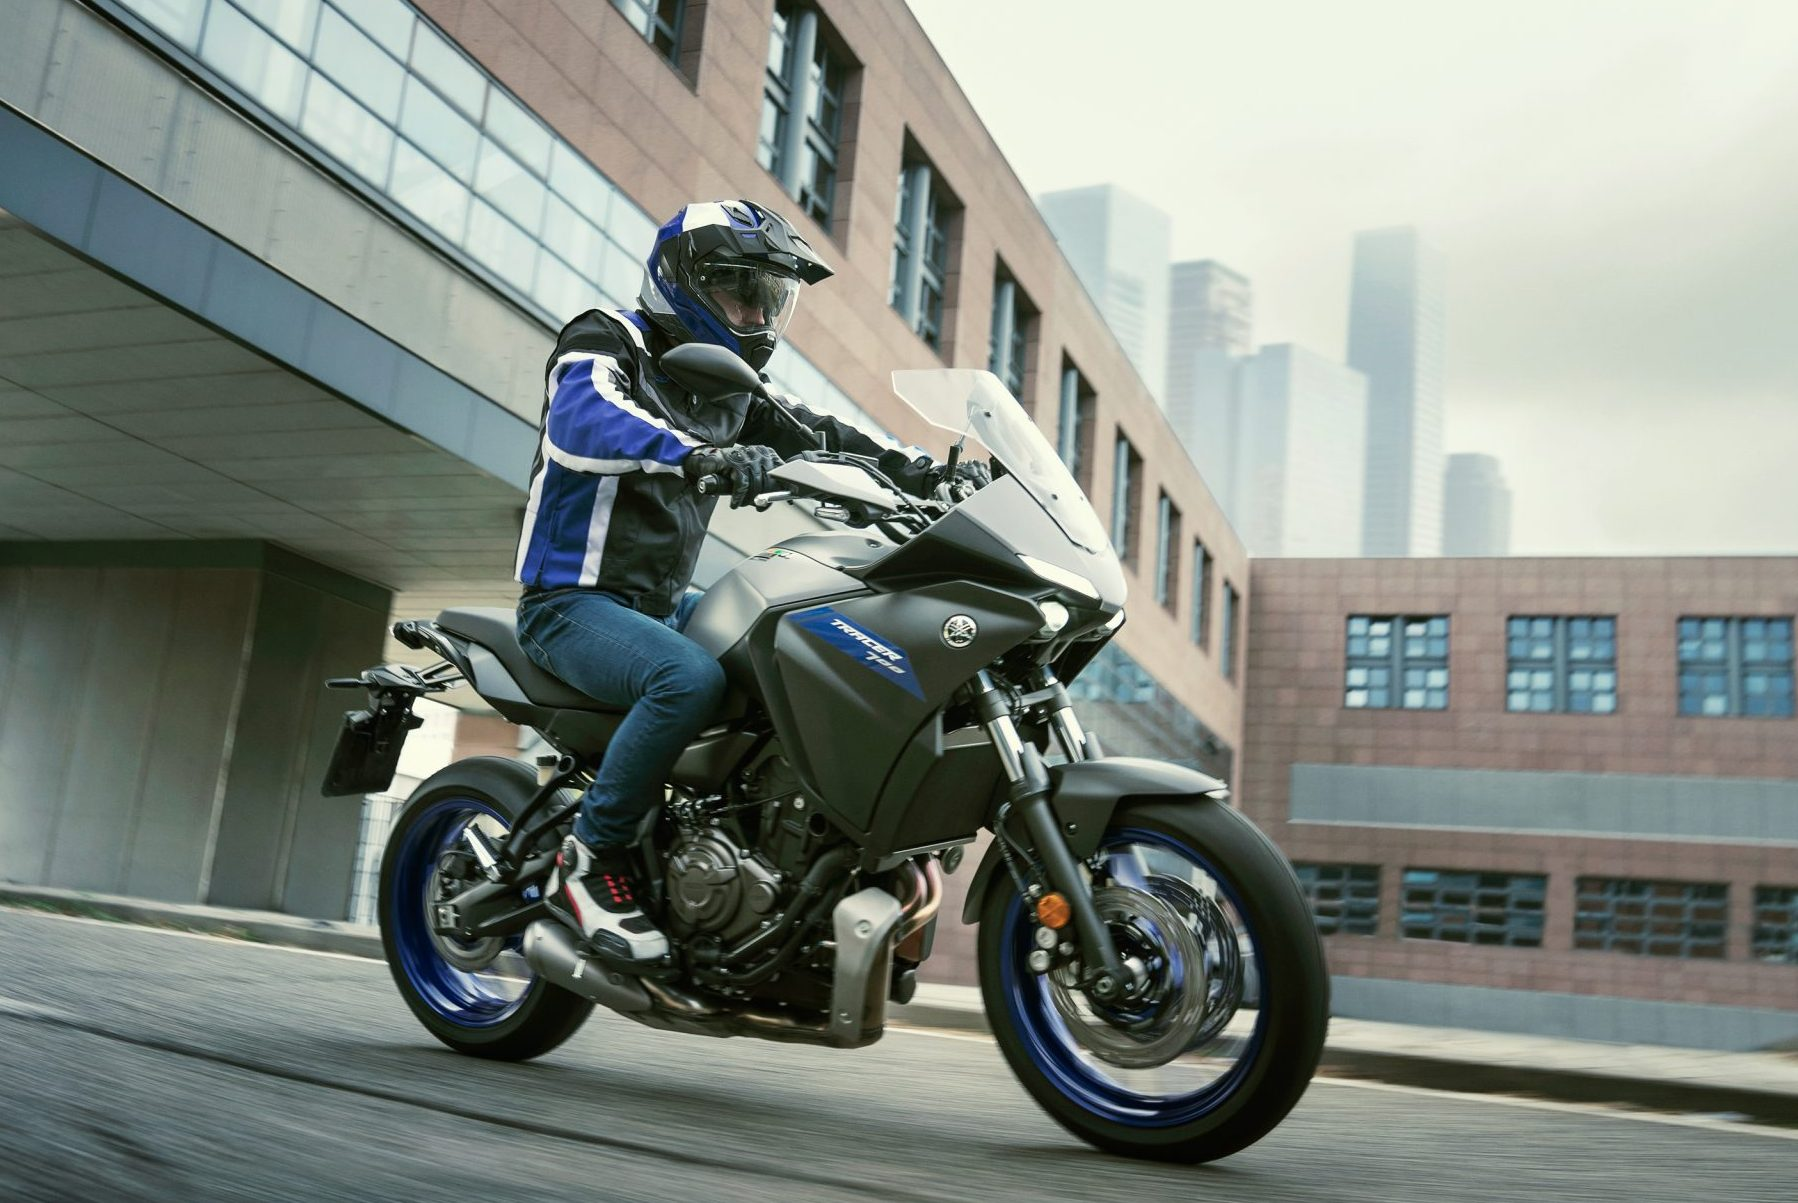 Yamaha Tracer 700 in the city